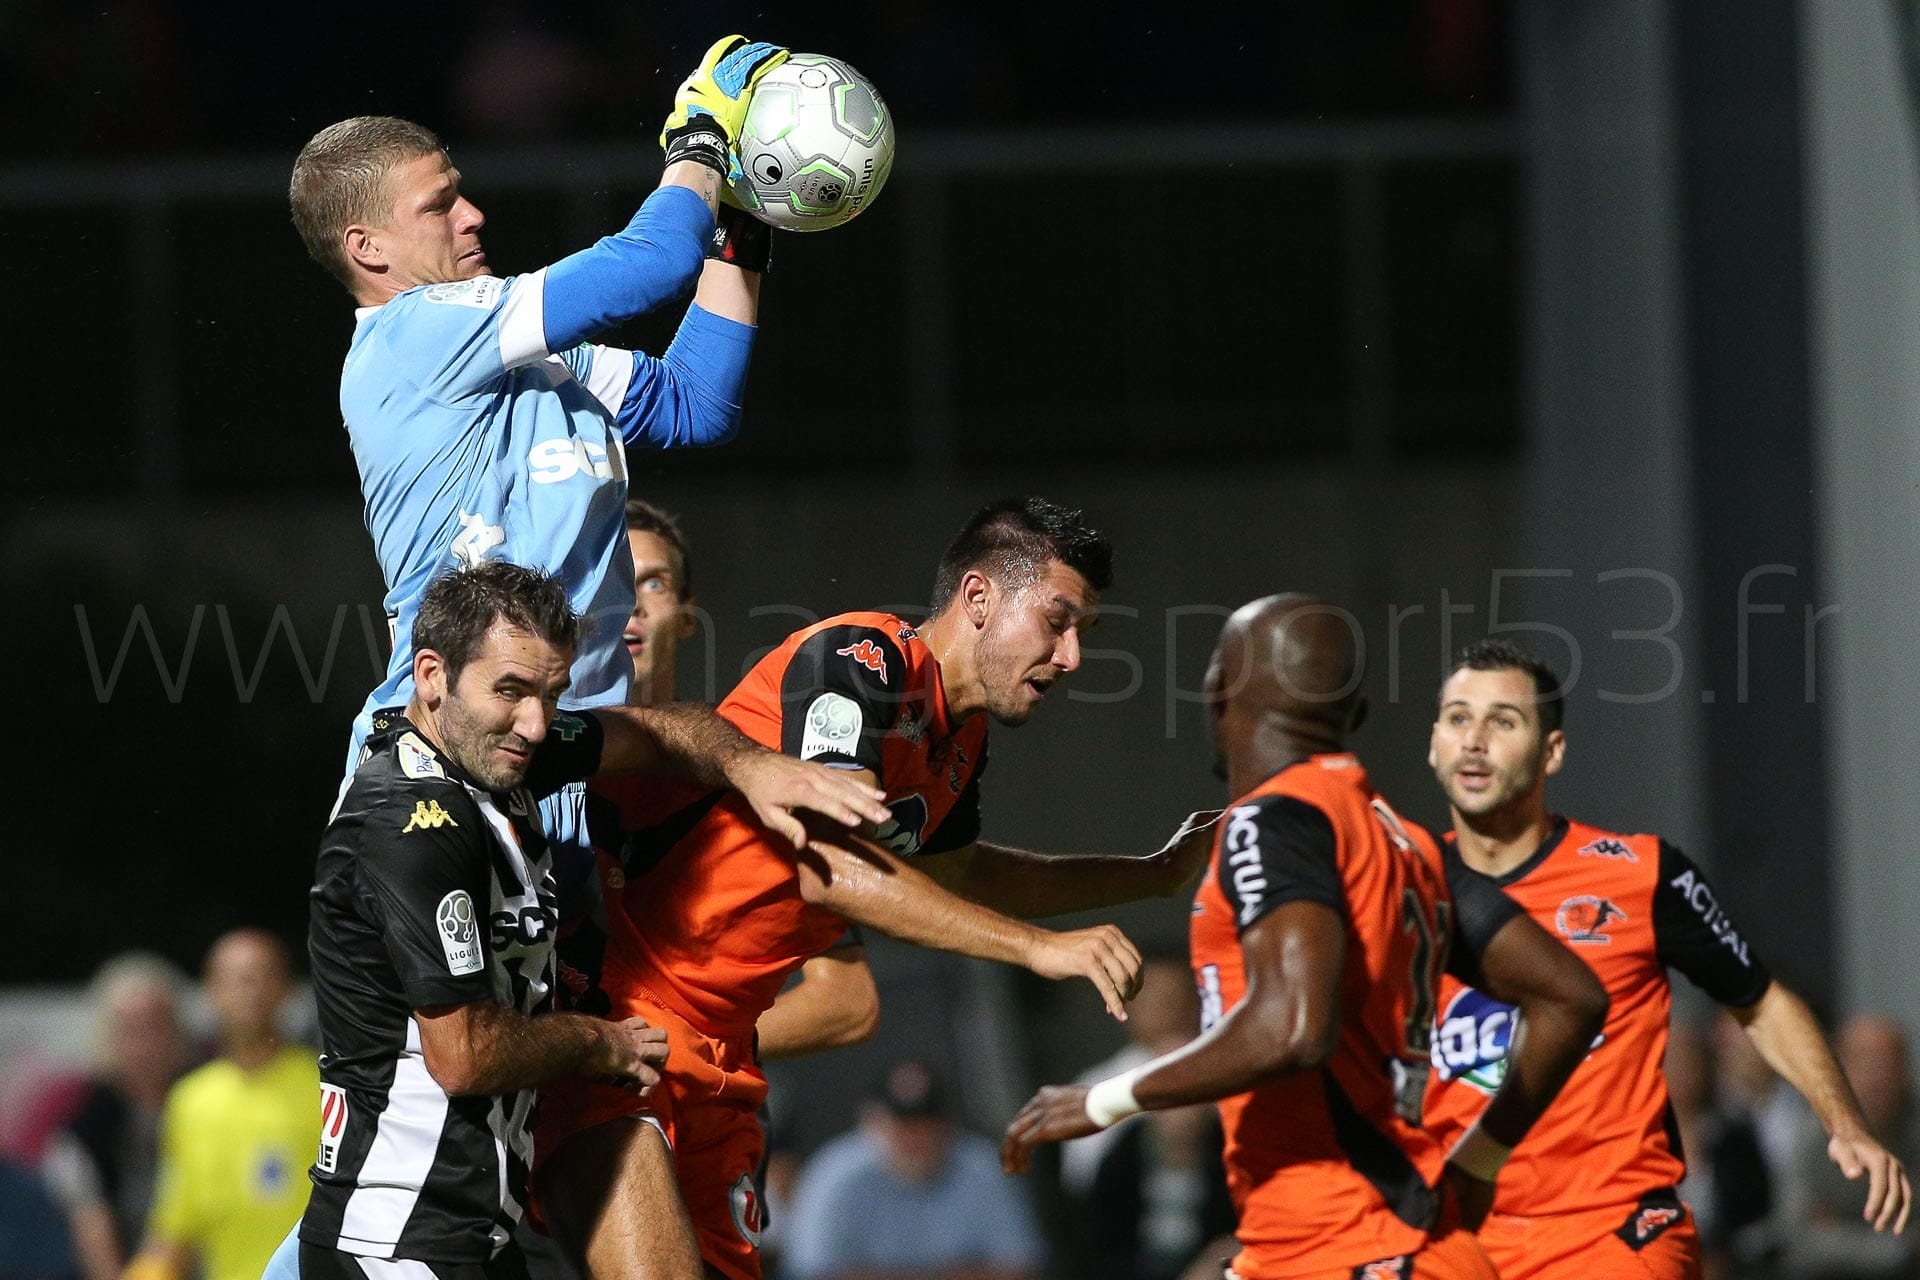 NG-Ligue2-1415-J07-Laval-Angers_32